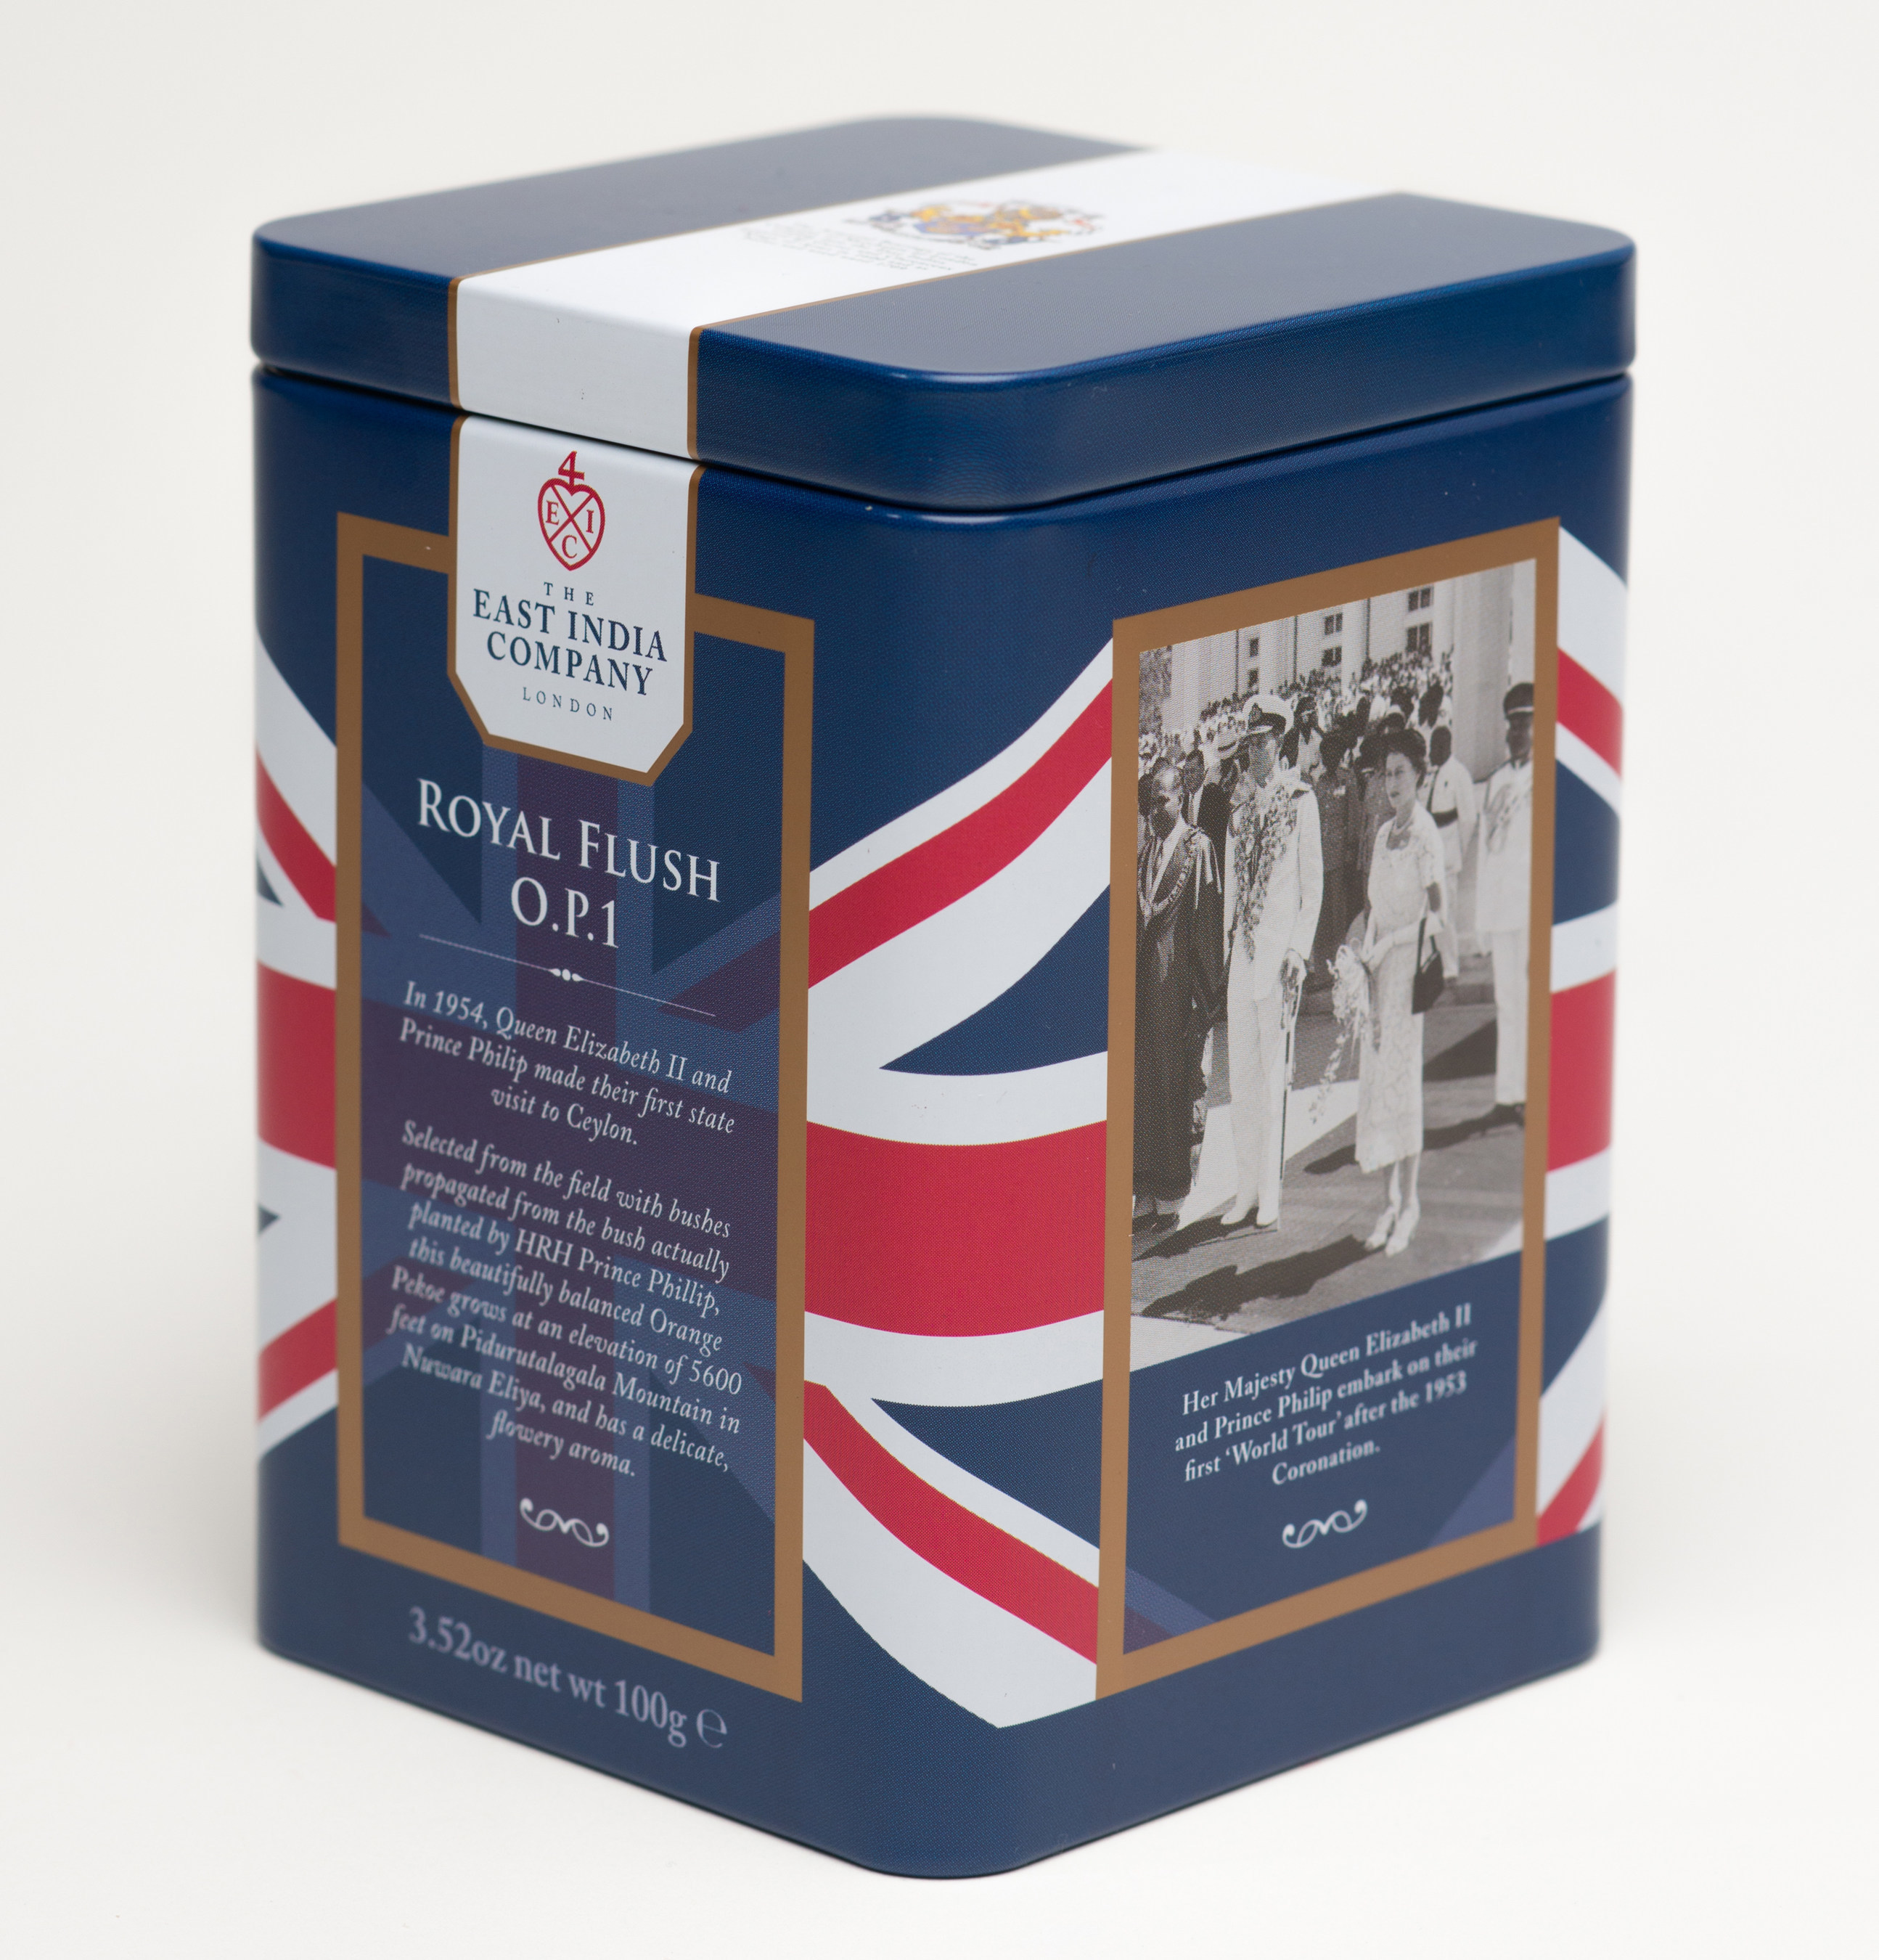 The East India Company Festive Collection